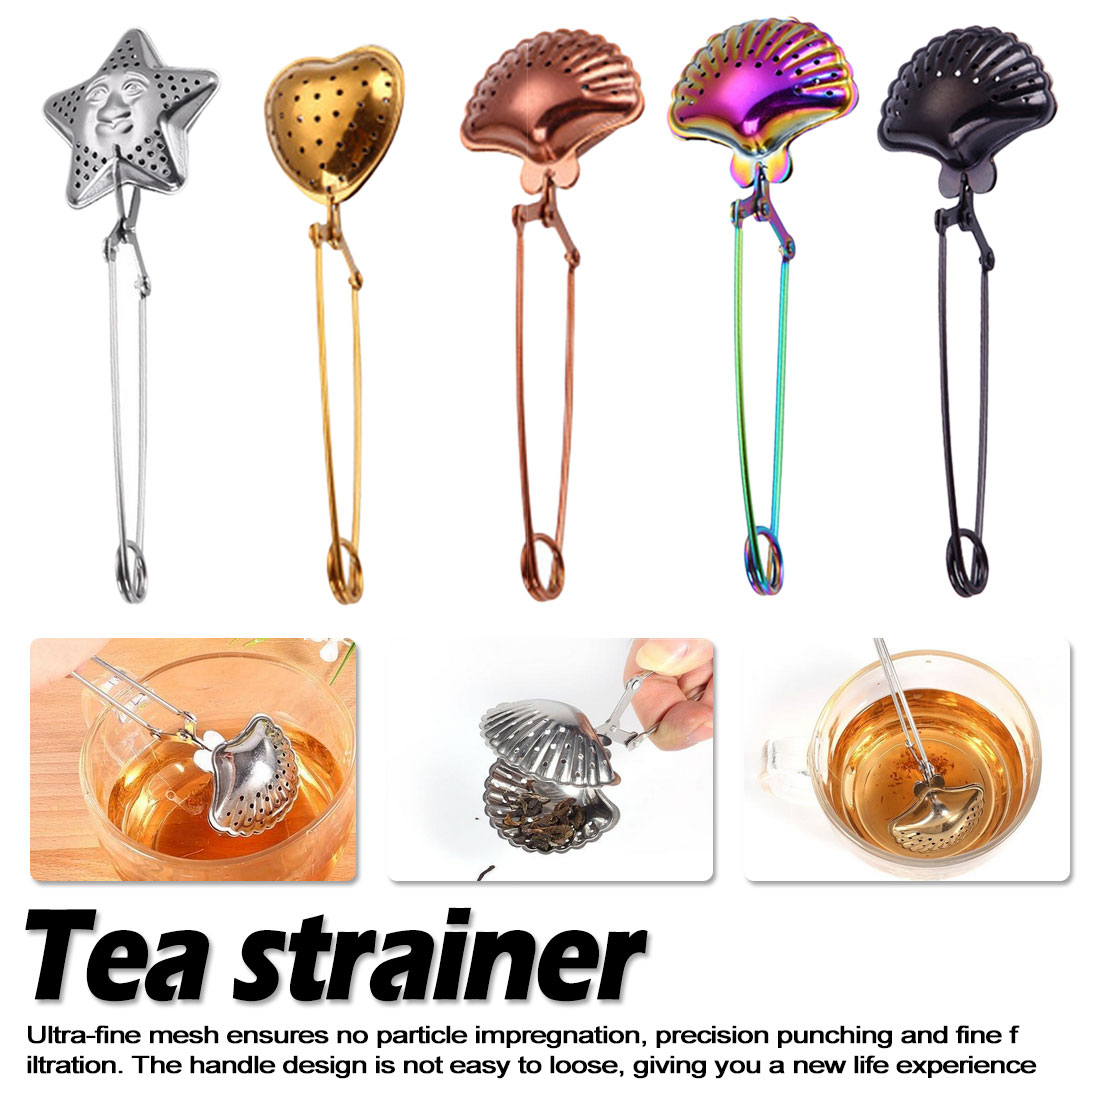 Tea Strainer Stainless Steel Heart Star shell Shape Tea Infuser Spice Filter Reusable teabag Handle Tea Teapot Tool Accessories